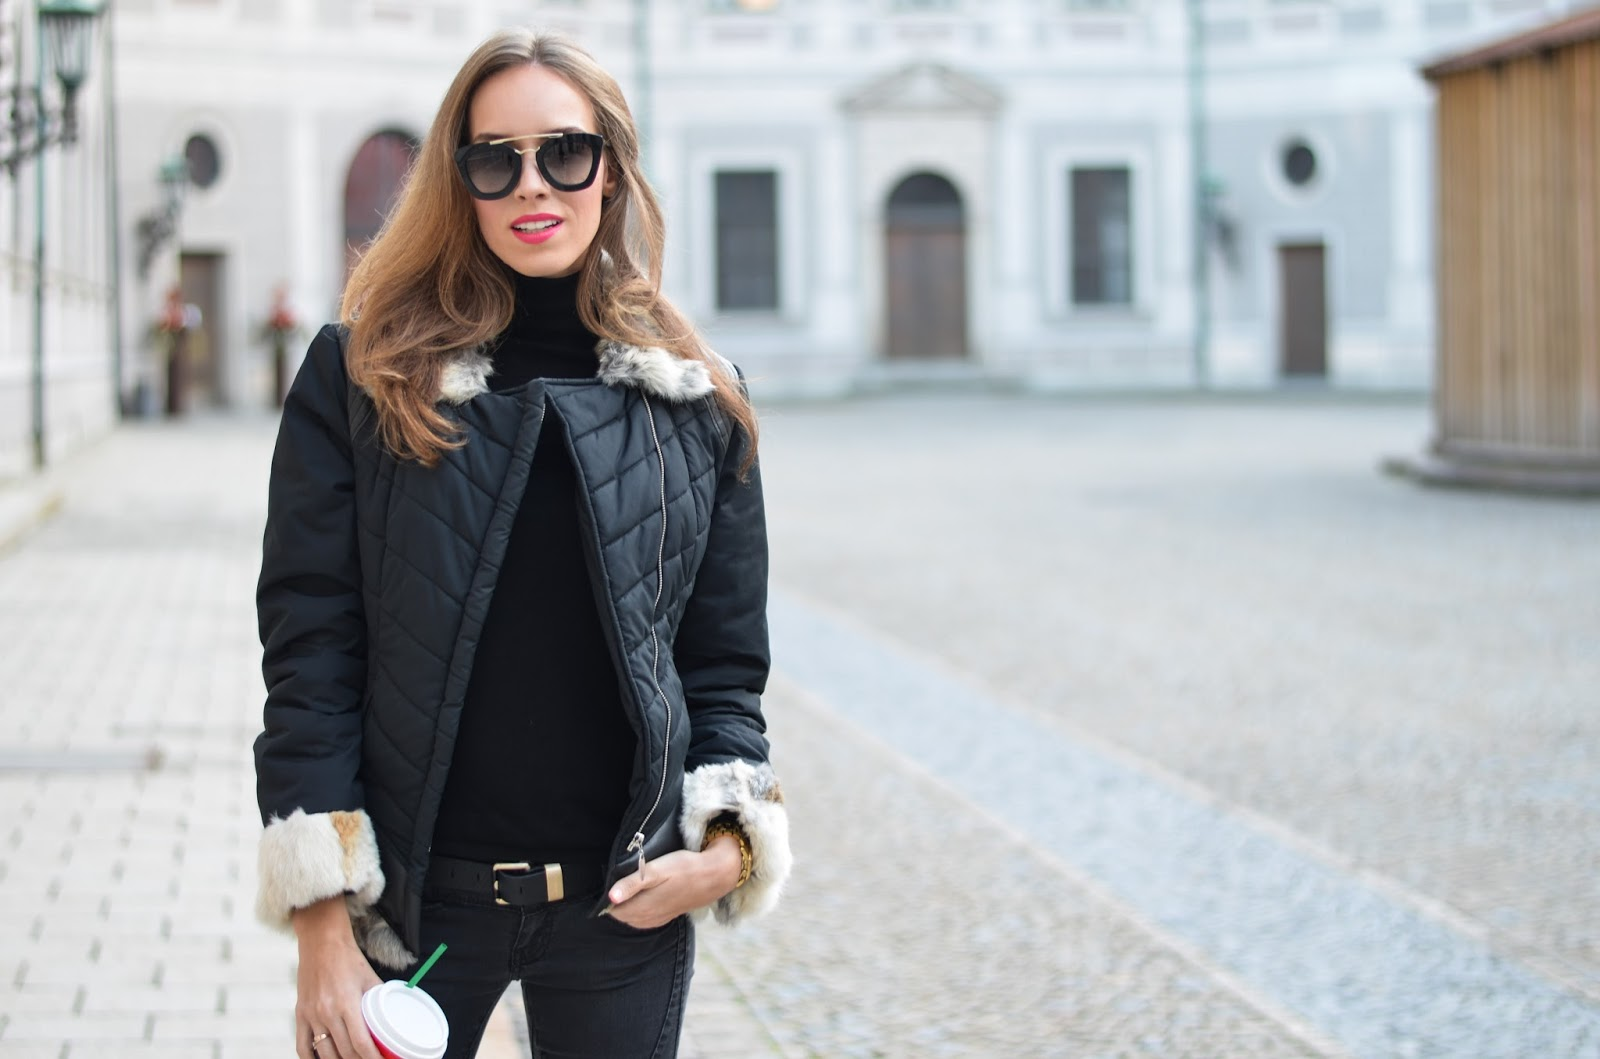 kristjaana mere rabbit fur collar jacket black turtleneck prada sunglasses winter outfit